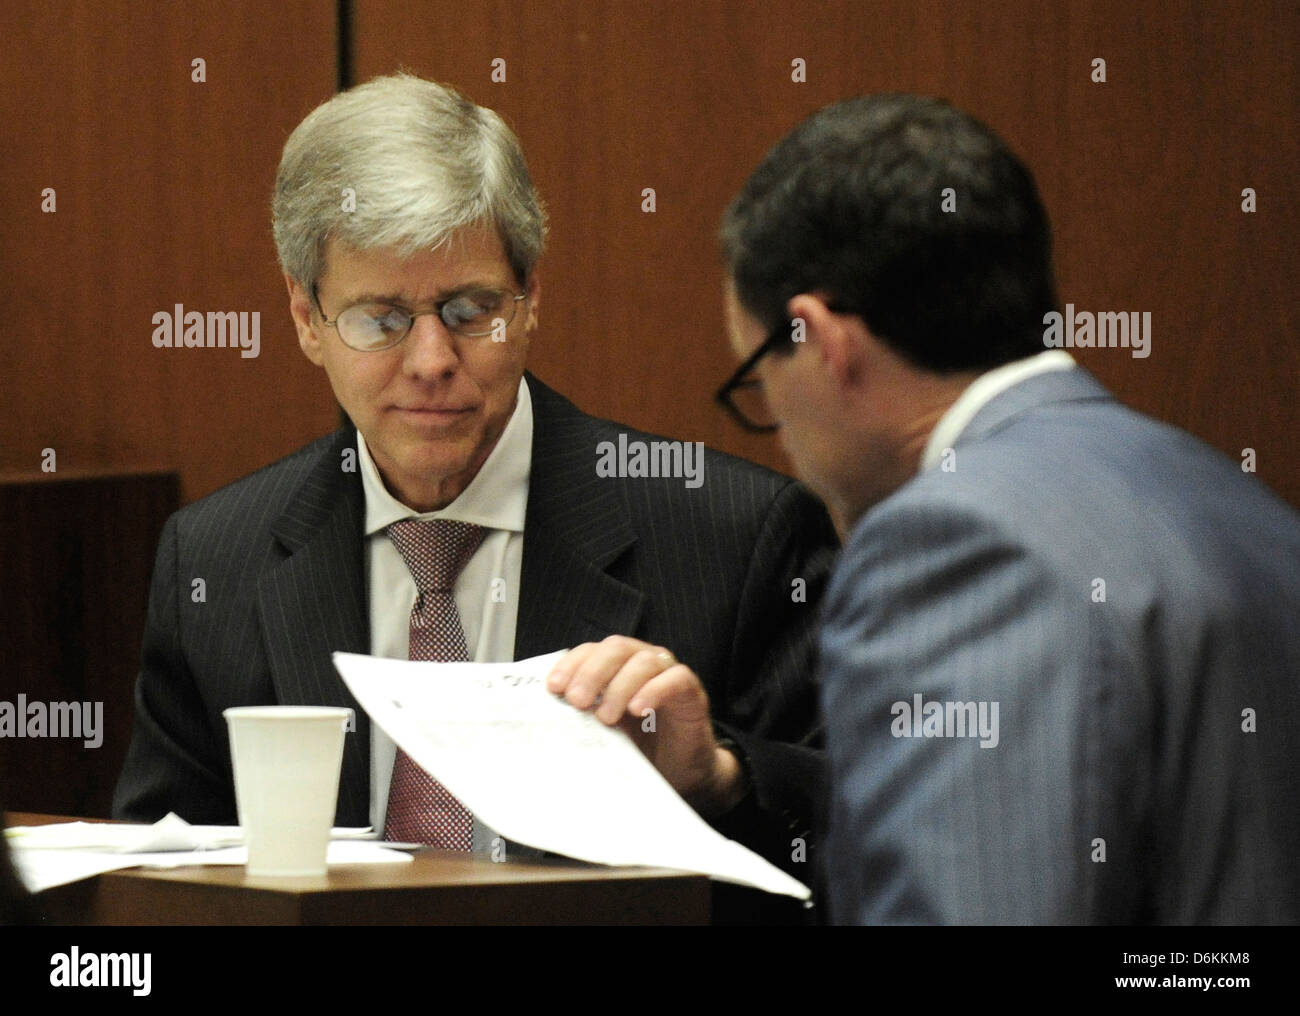 Propofol expert anesthesiology Dr. Steven Shafer examines papers during cross examinedby defense attorney Ed Chernoff - Stock Image